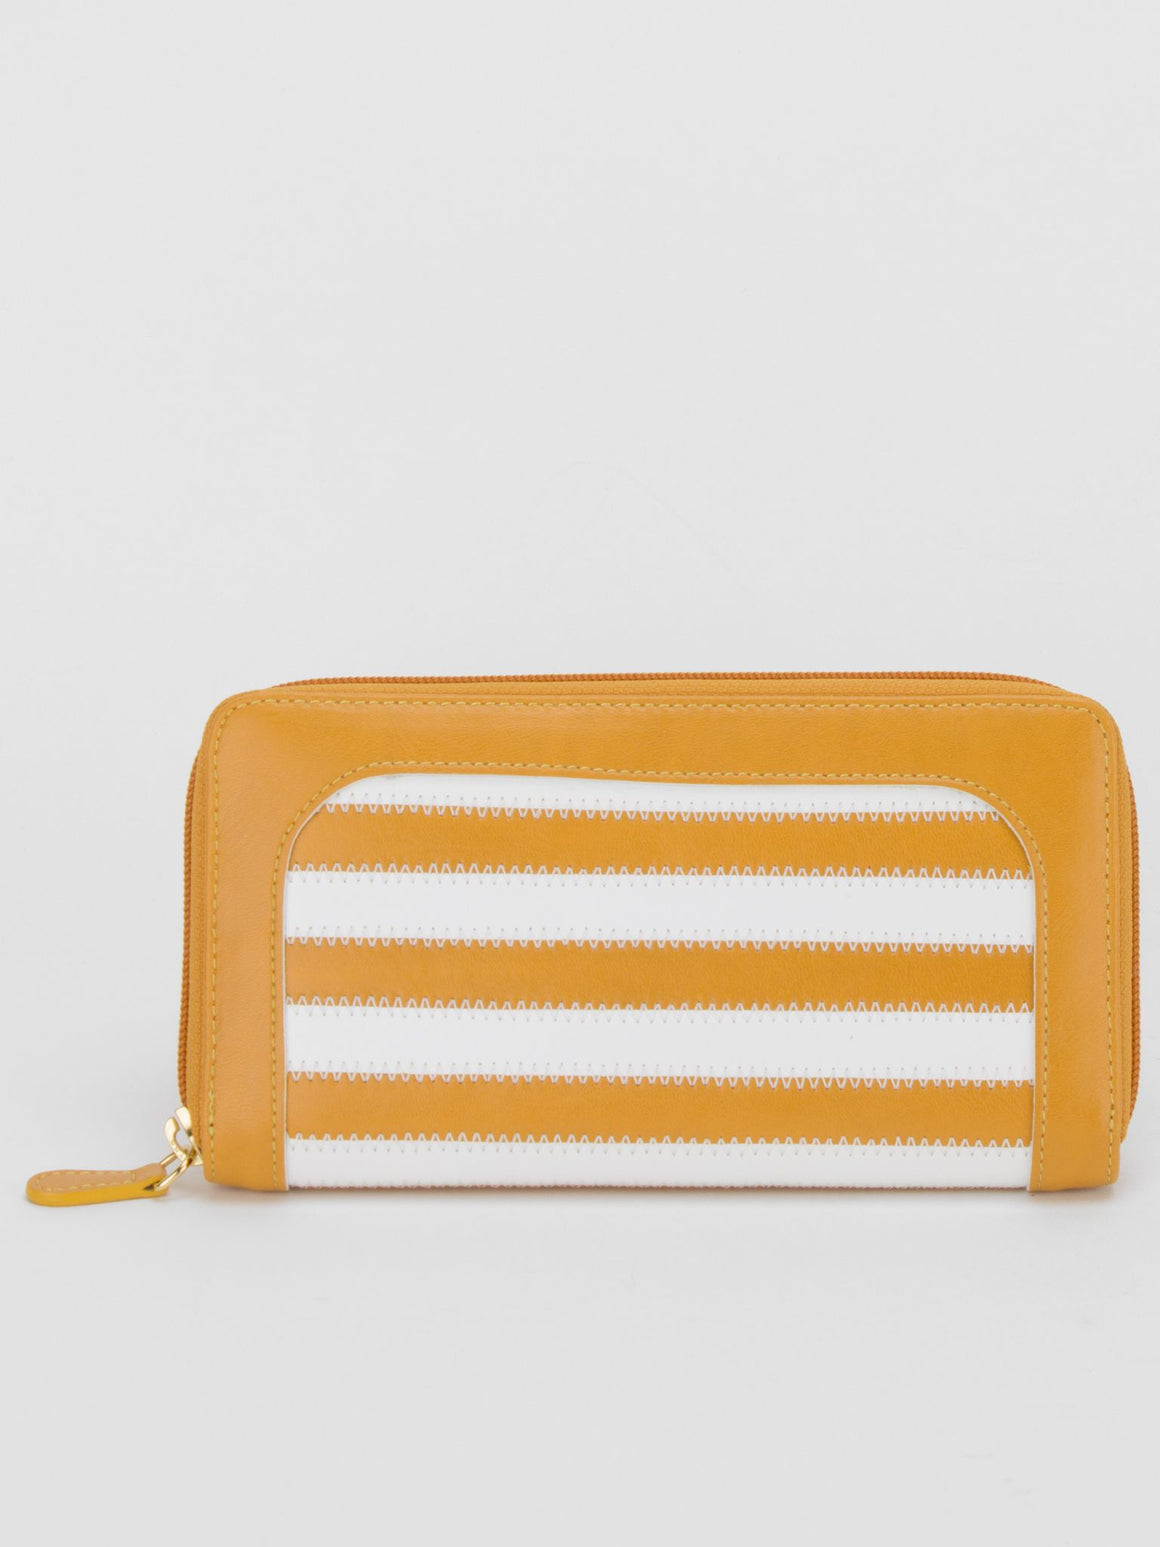 Gina Leather Striped Long Wallet - Honey